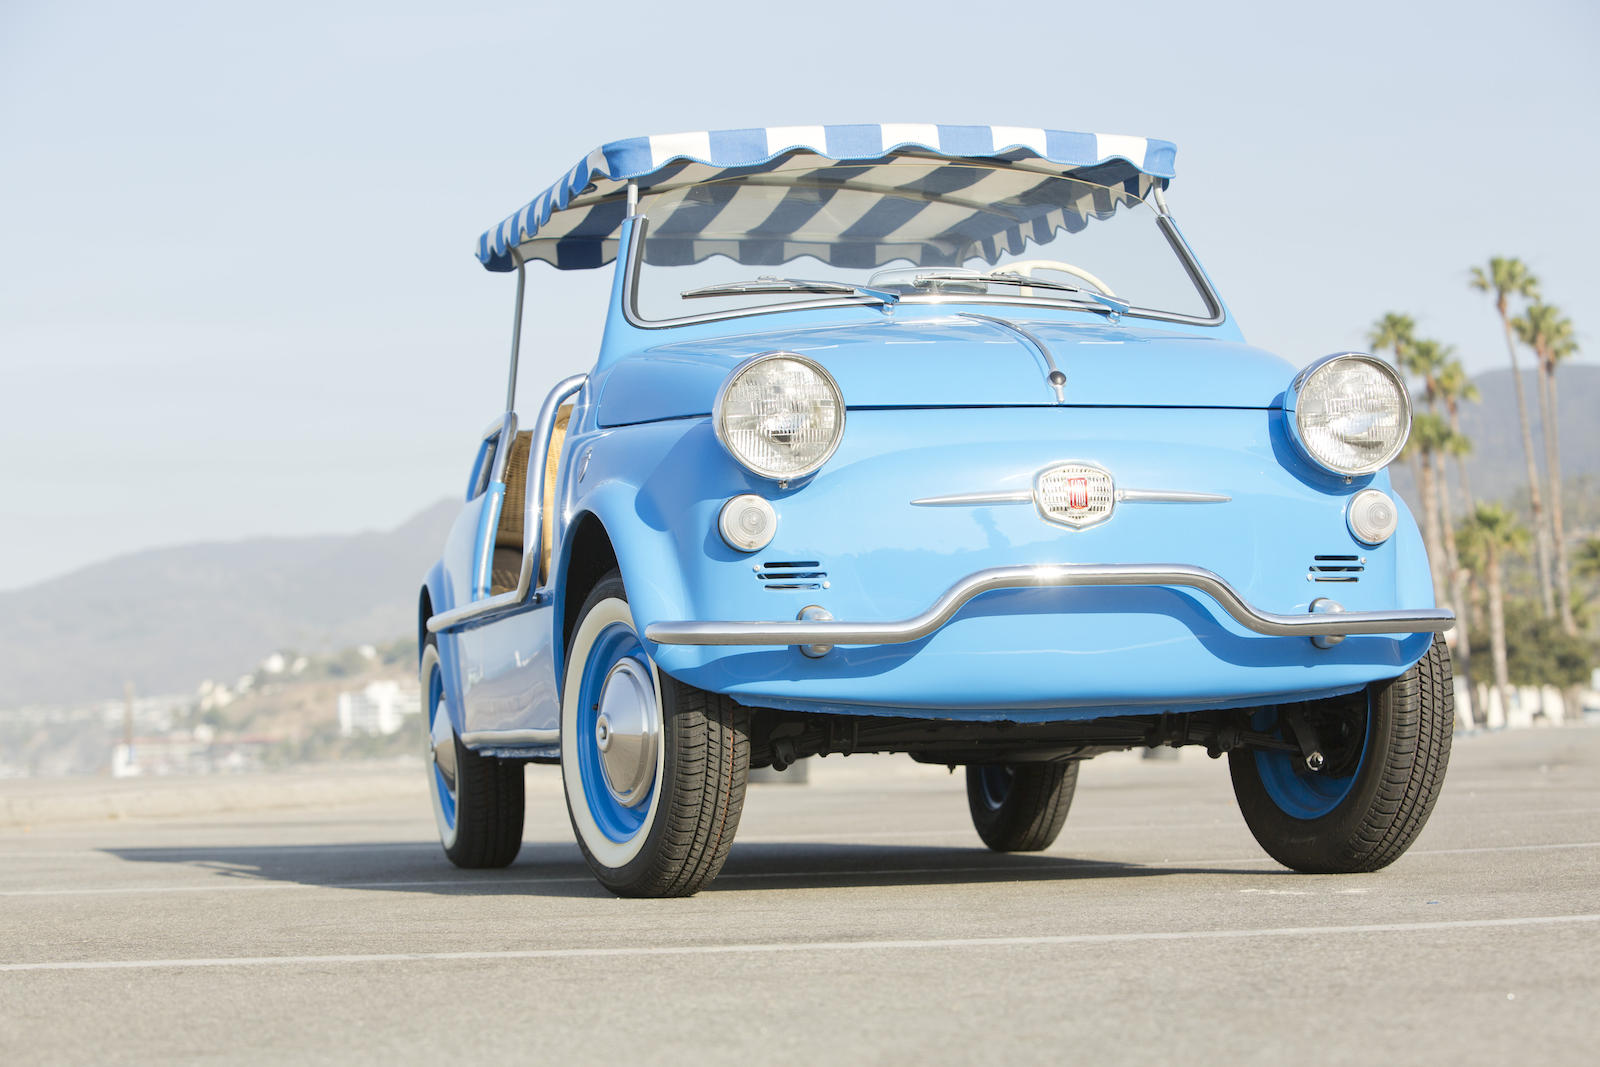 1959 Fiat Jolly front low